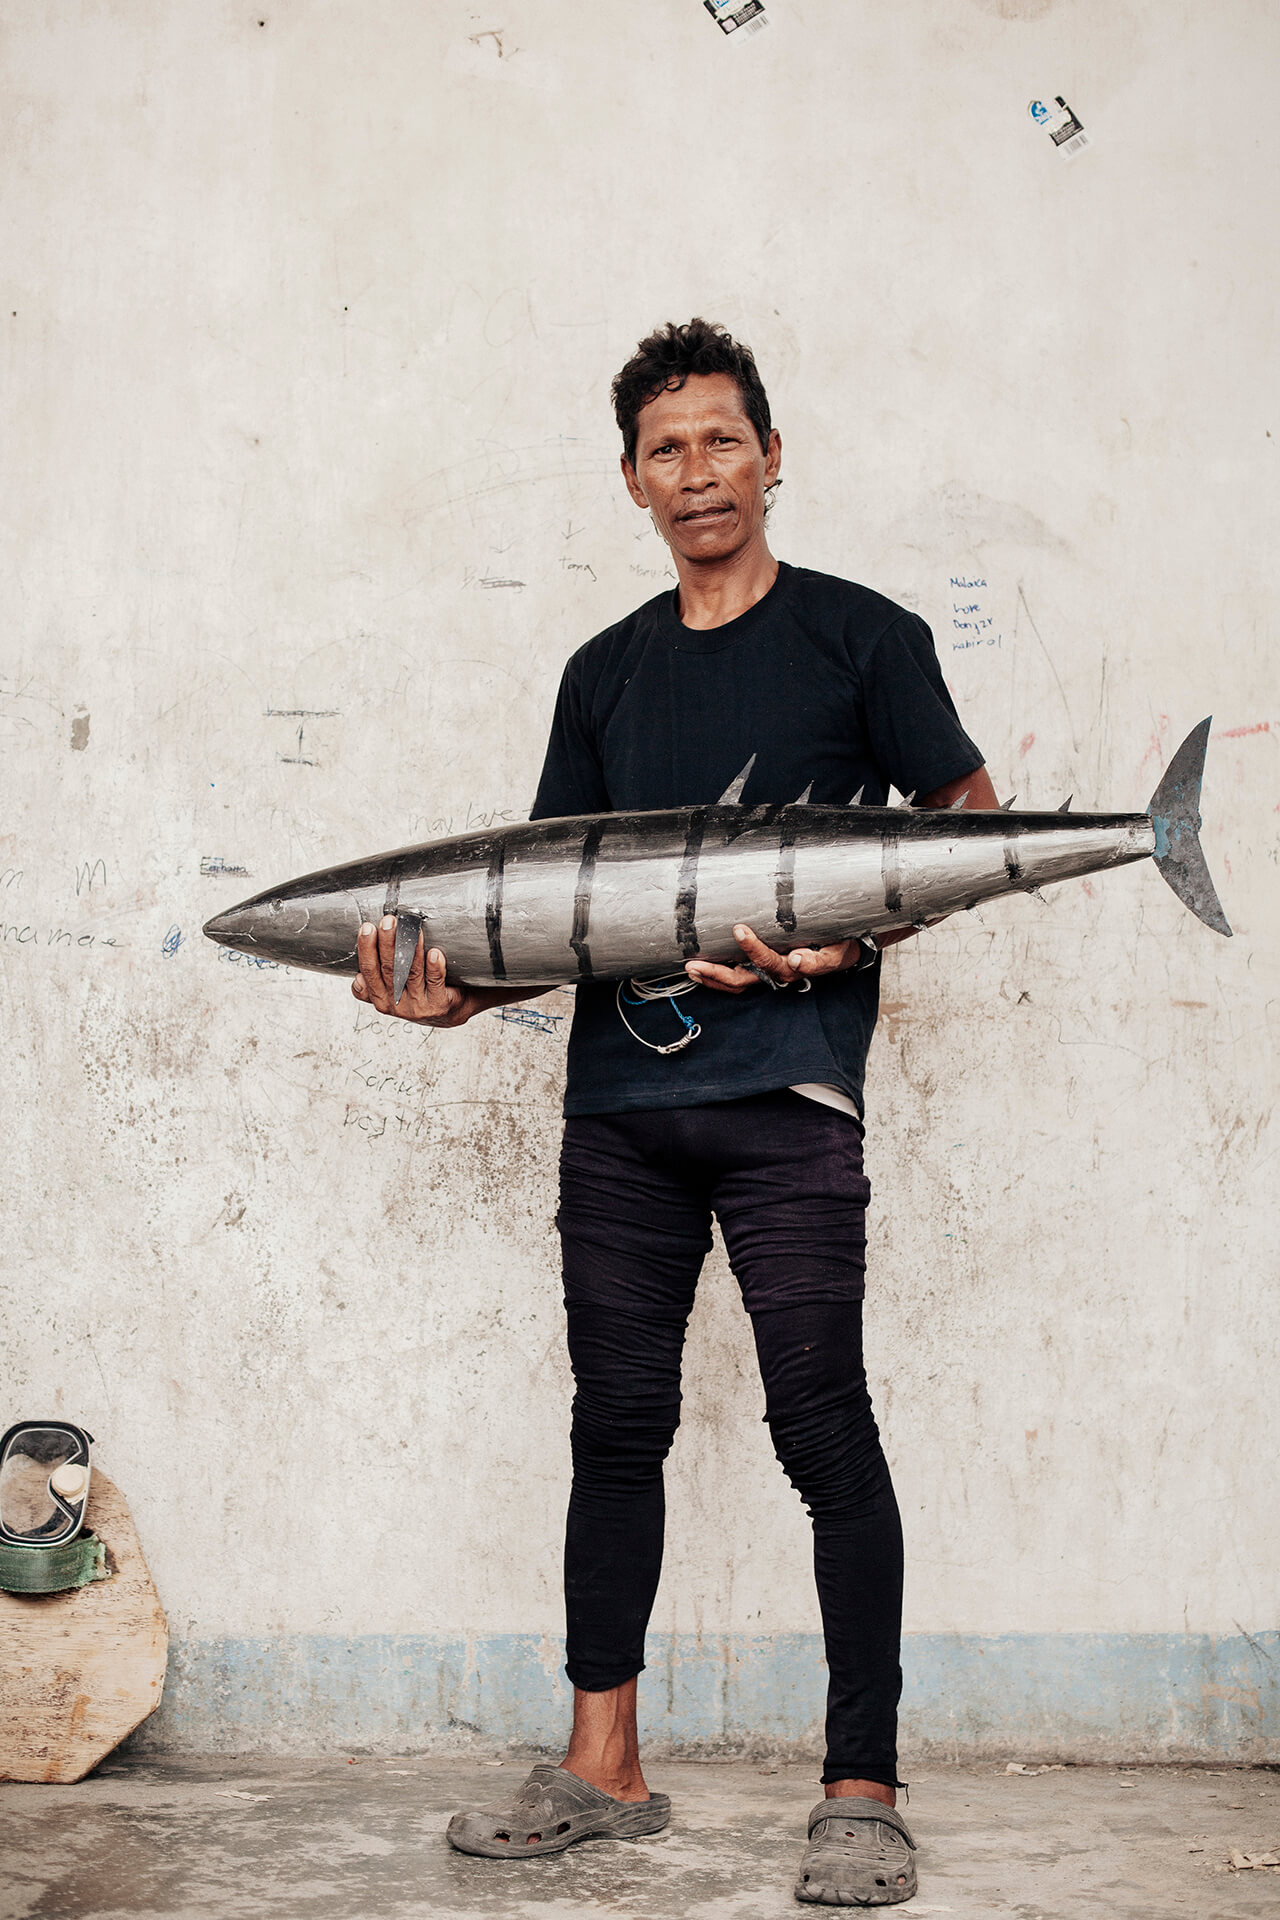 Papa Kula lands the big fish: he goes after large tanigue, which he draws in with a stunningly lifelike three-foot wooden lure that he fashioned himself.